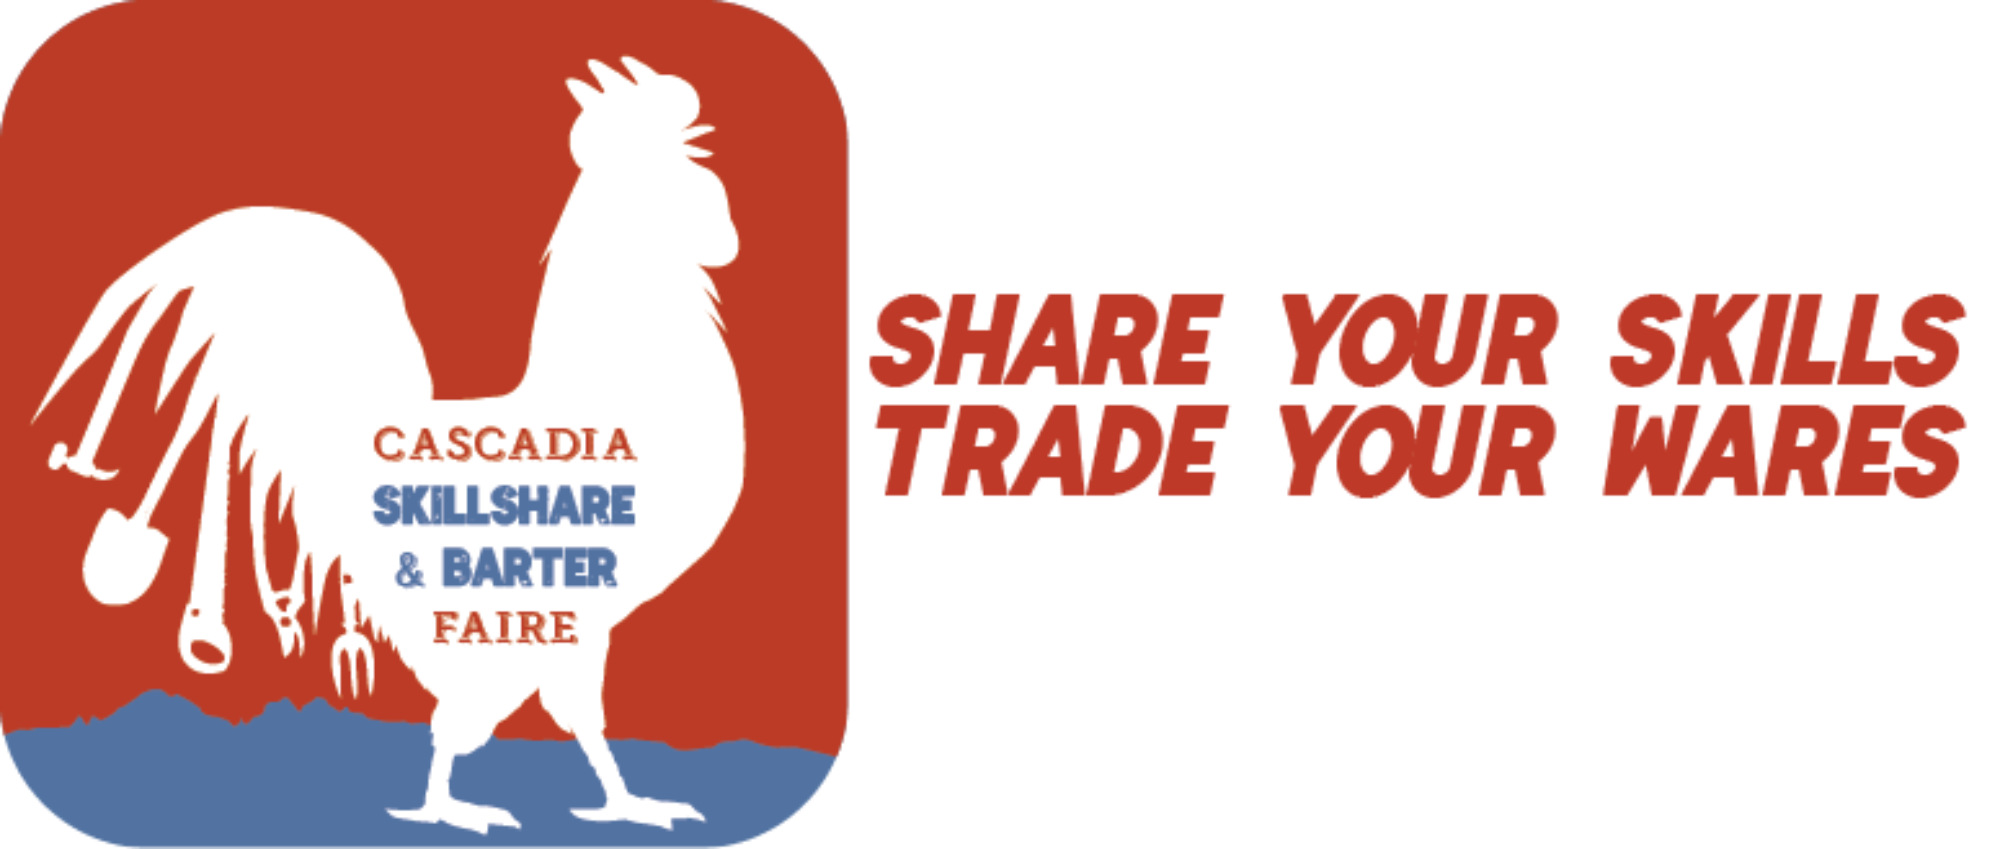 6th Annual Cascadia Skillshare & Barter Faire